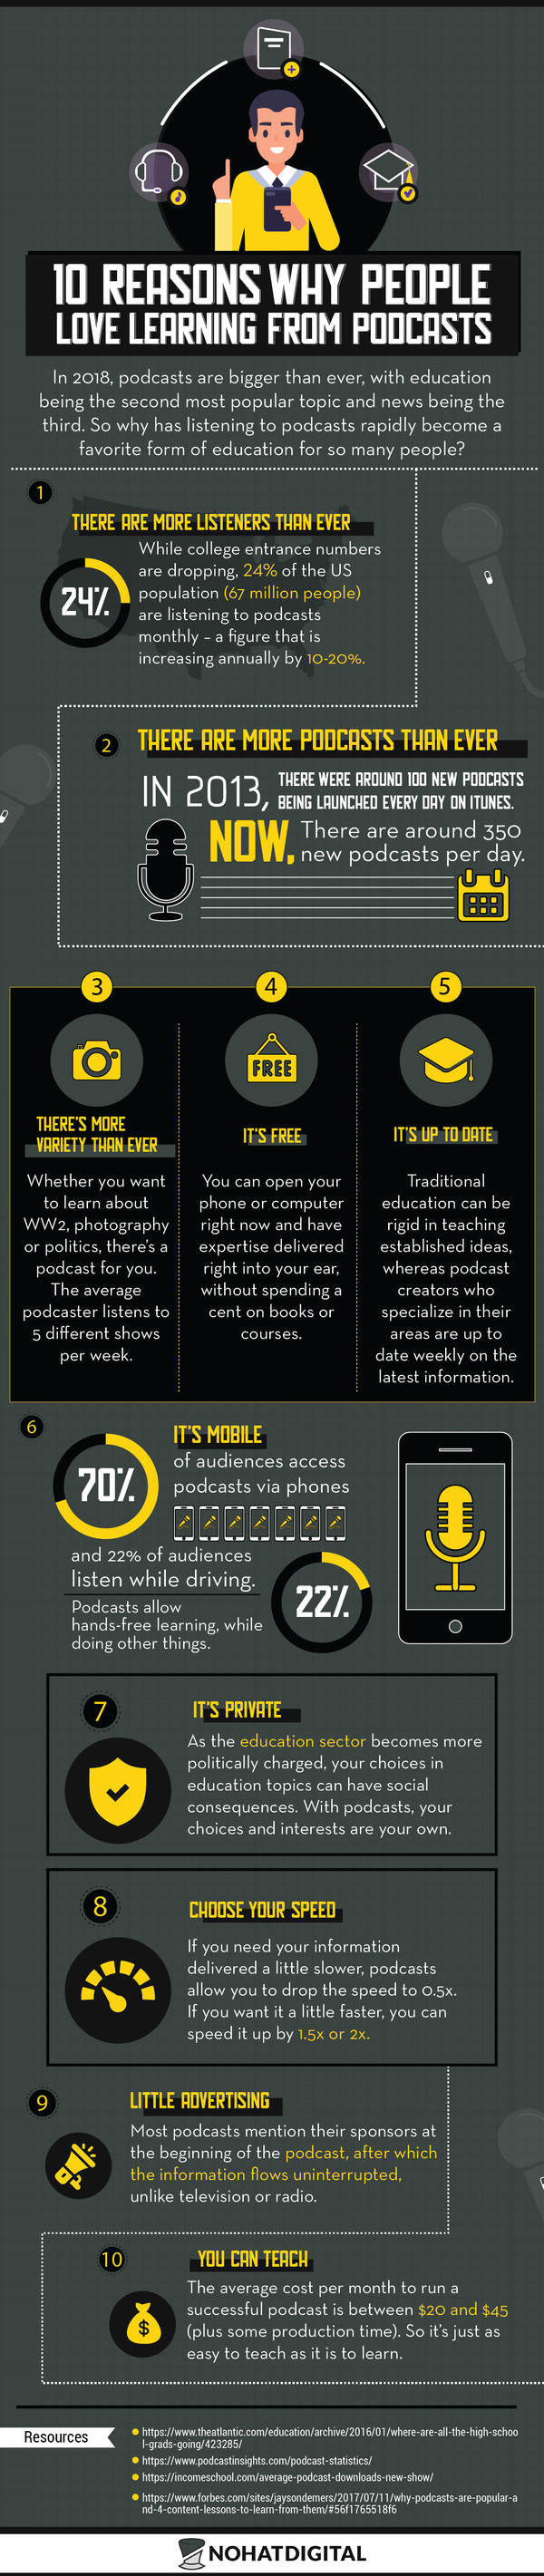 Why Podcast Popularity is Increasing Day-by-Day - Infographic